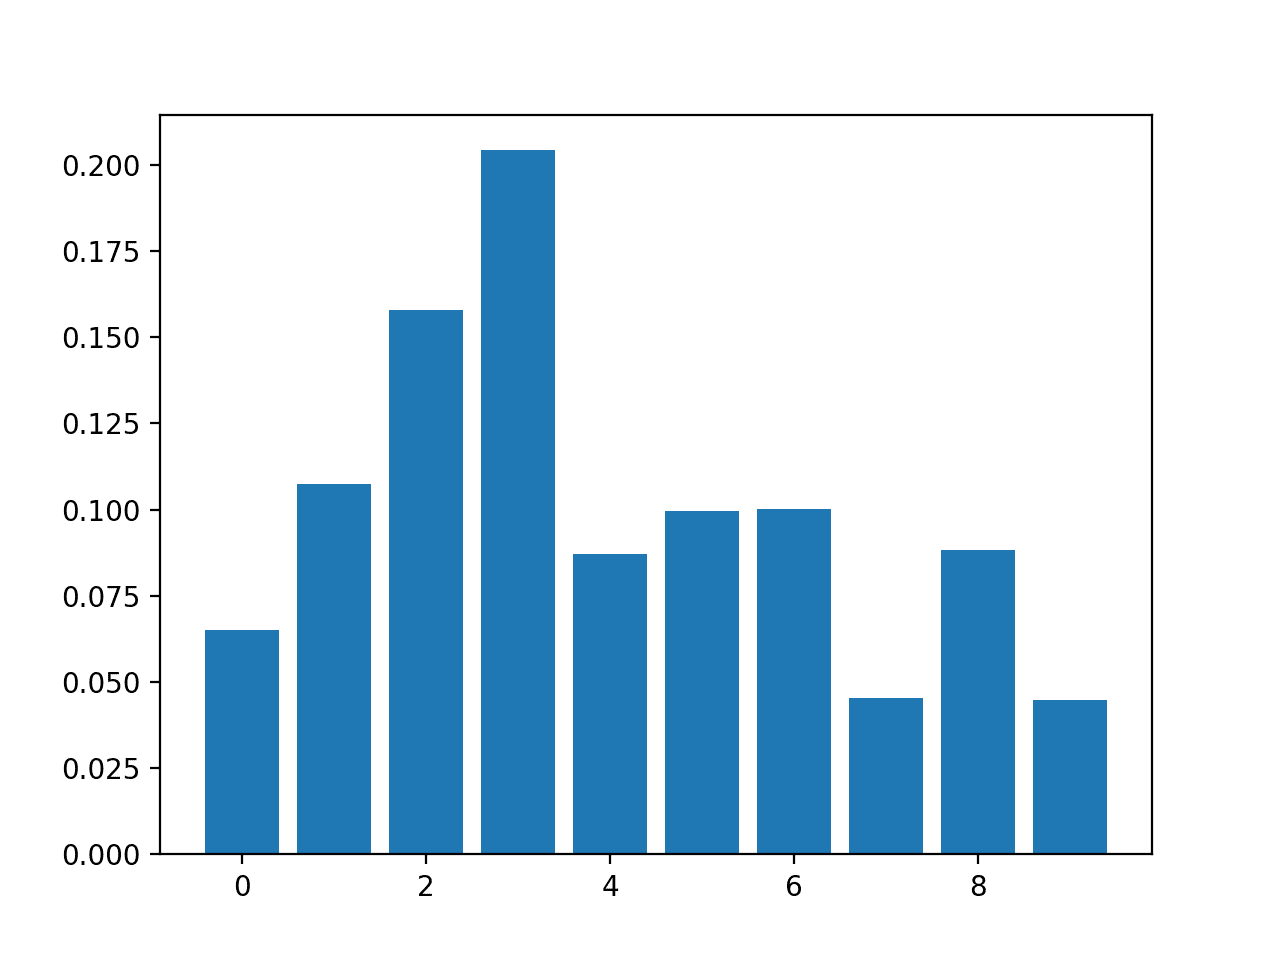 Bar Chart of RandomForestClassifier Feature Importance Scores